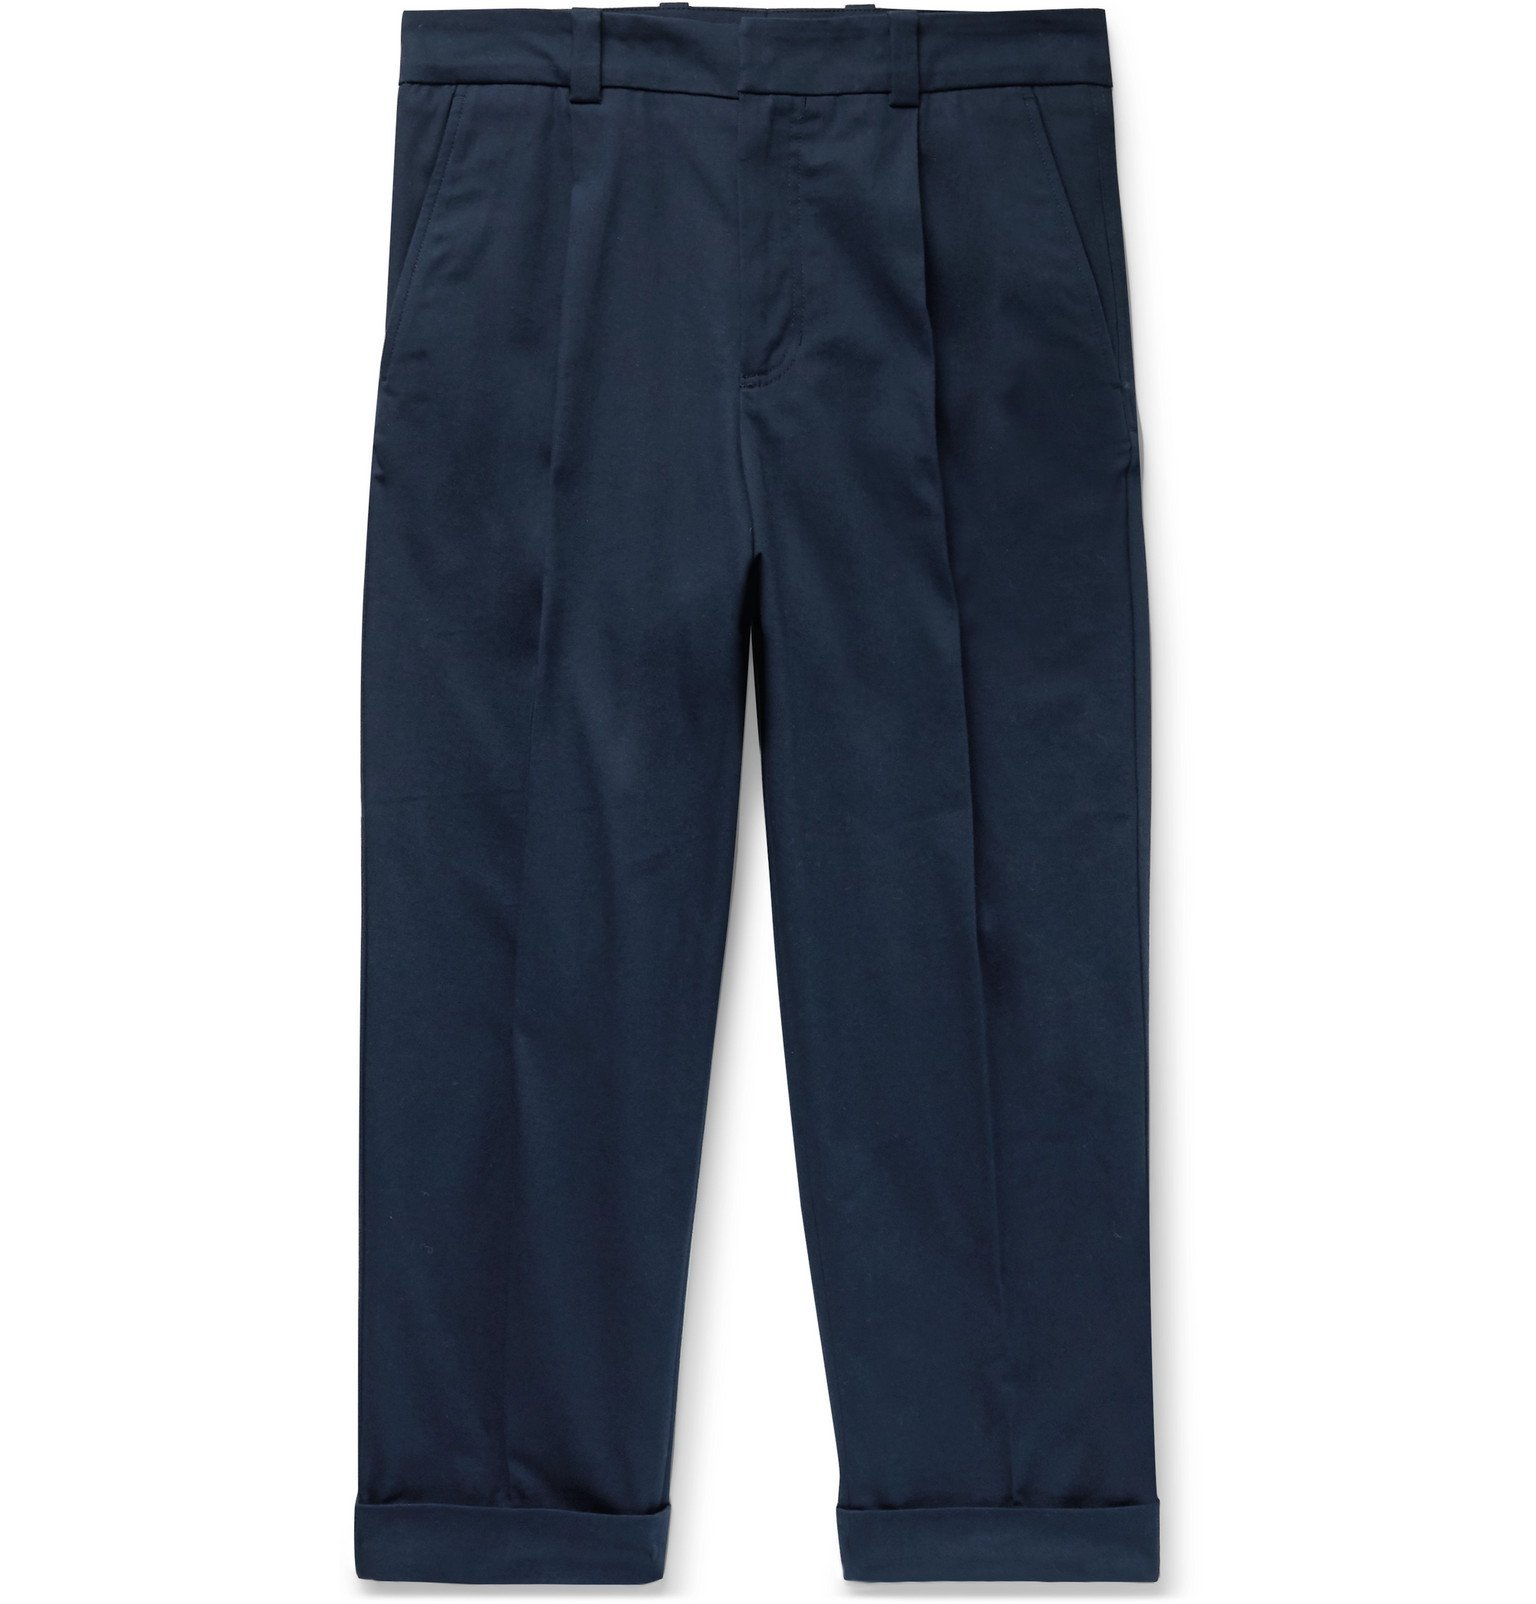 Acne Studios - Pierre Cropped Tapered Pleated Stretch-Cotton Trousers - Blue